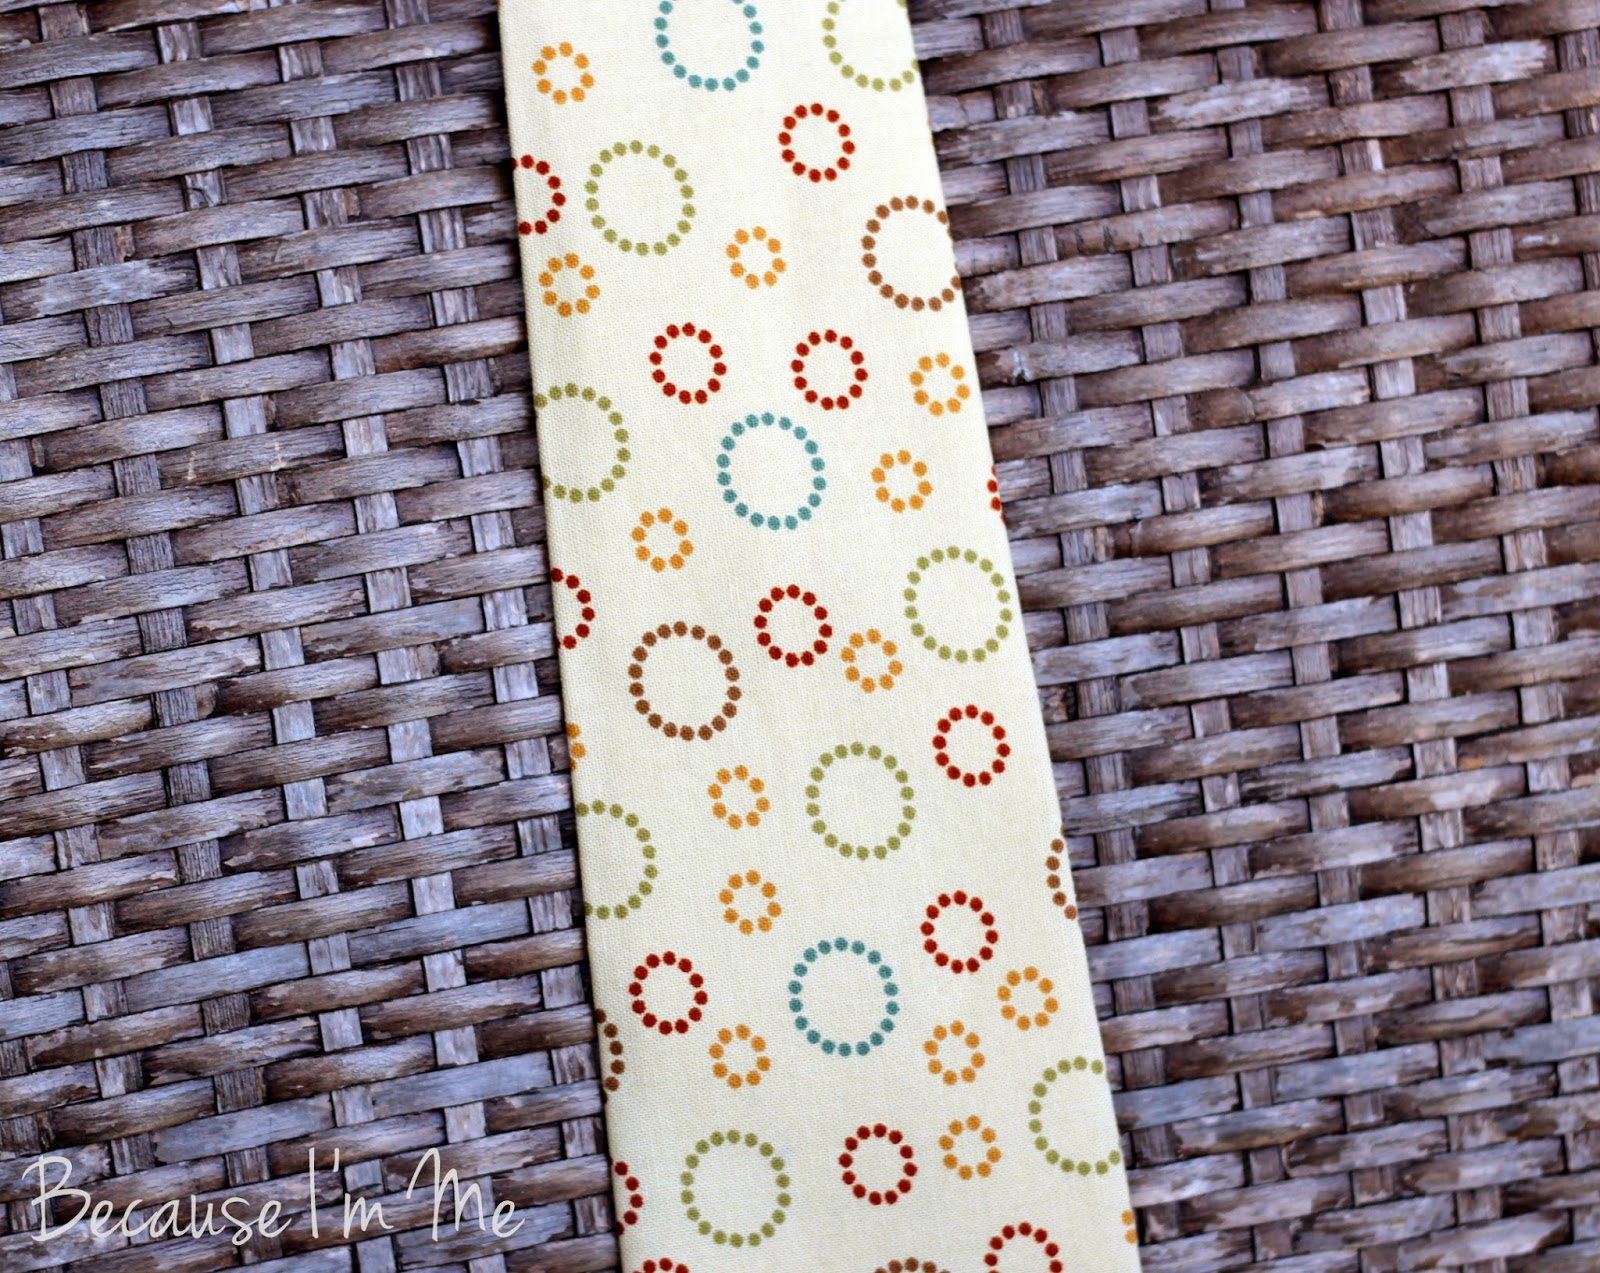 Because I'm Me yellow circular geometric print cotton necktie for men and boys